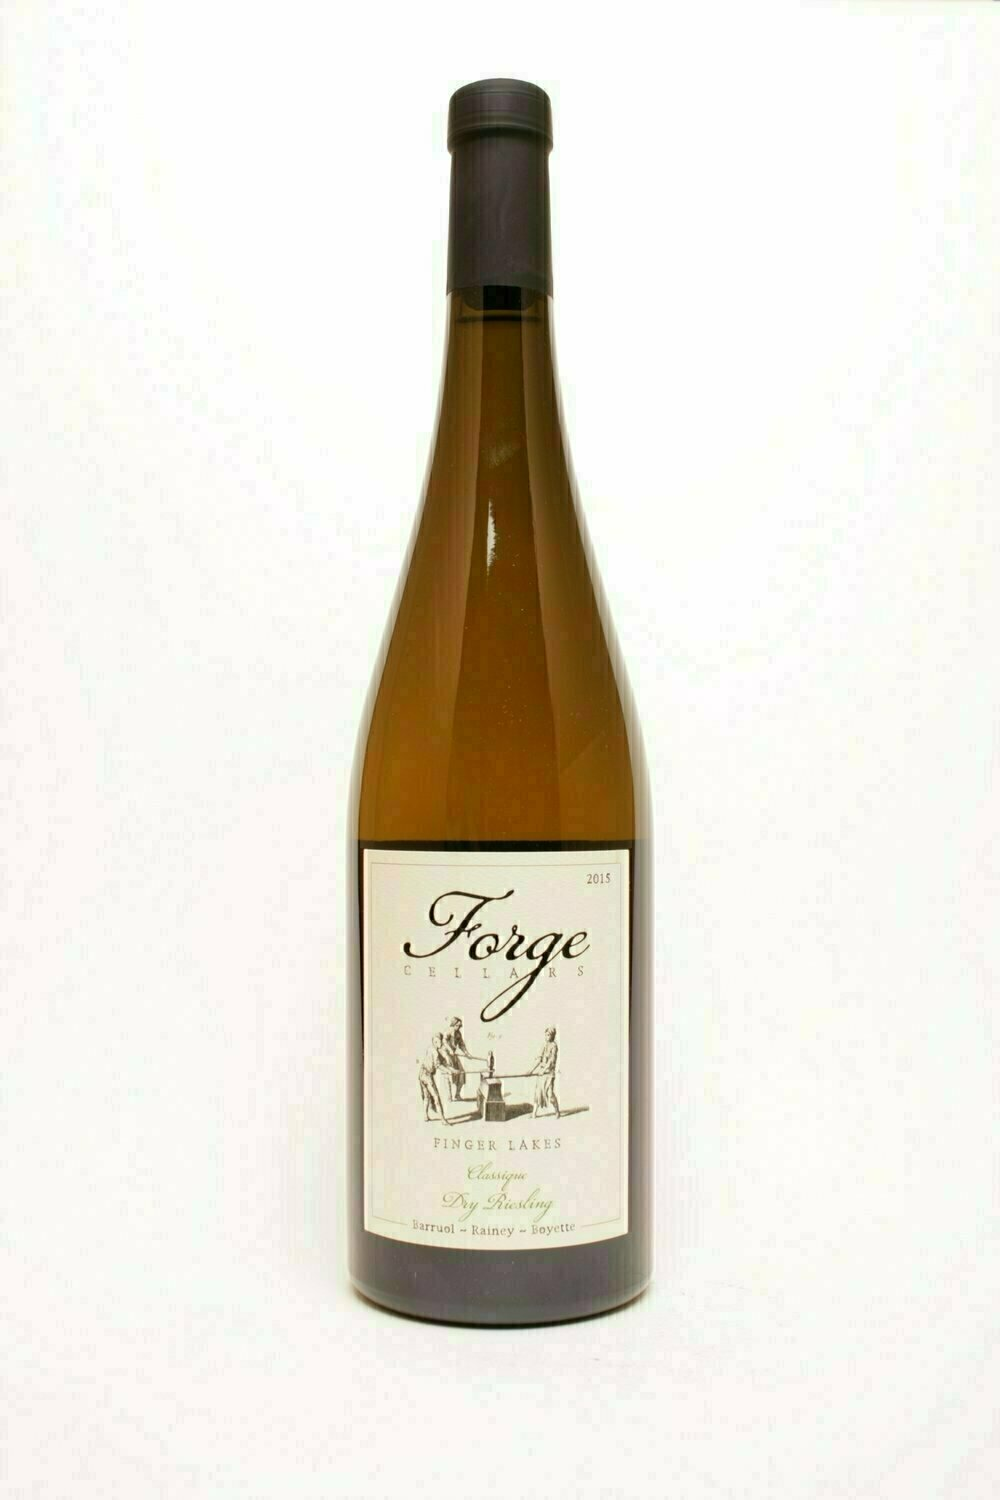 Forge Cellars Finger Lakes Riesling Dry Classique 2015